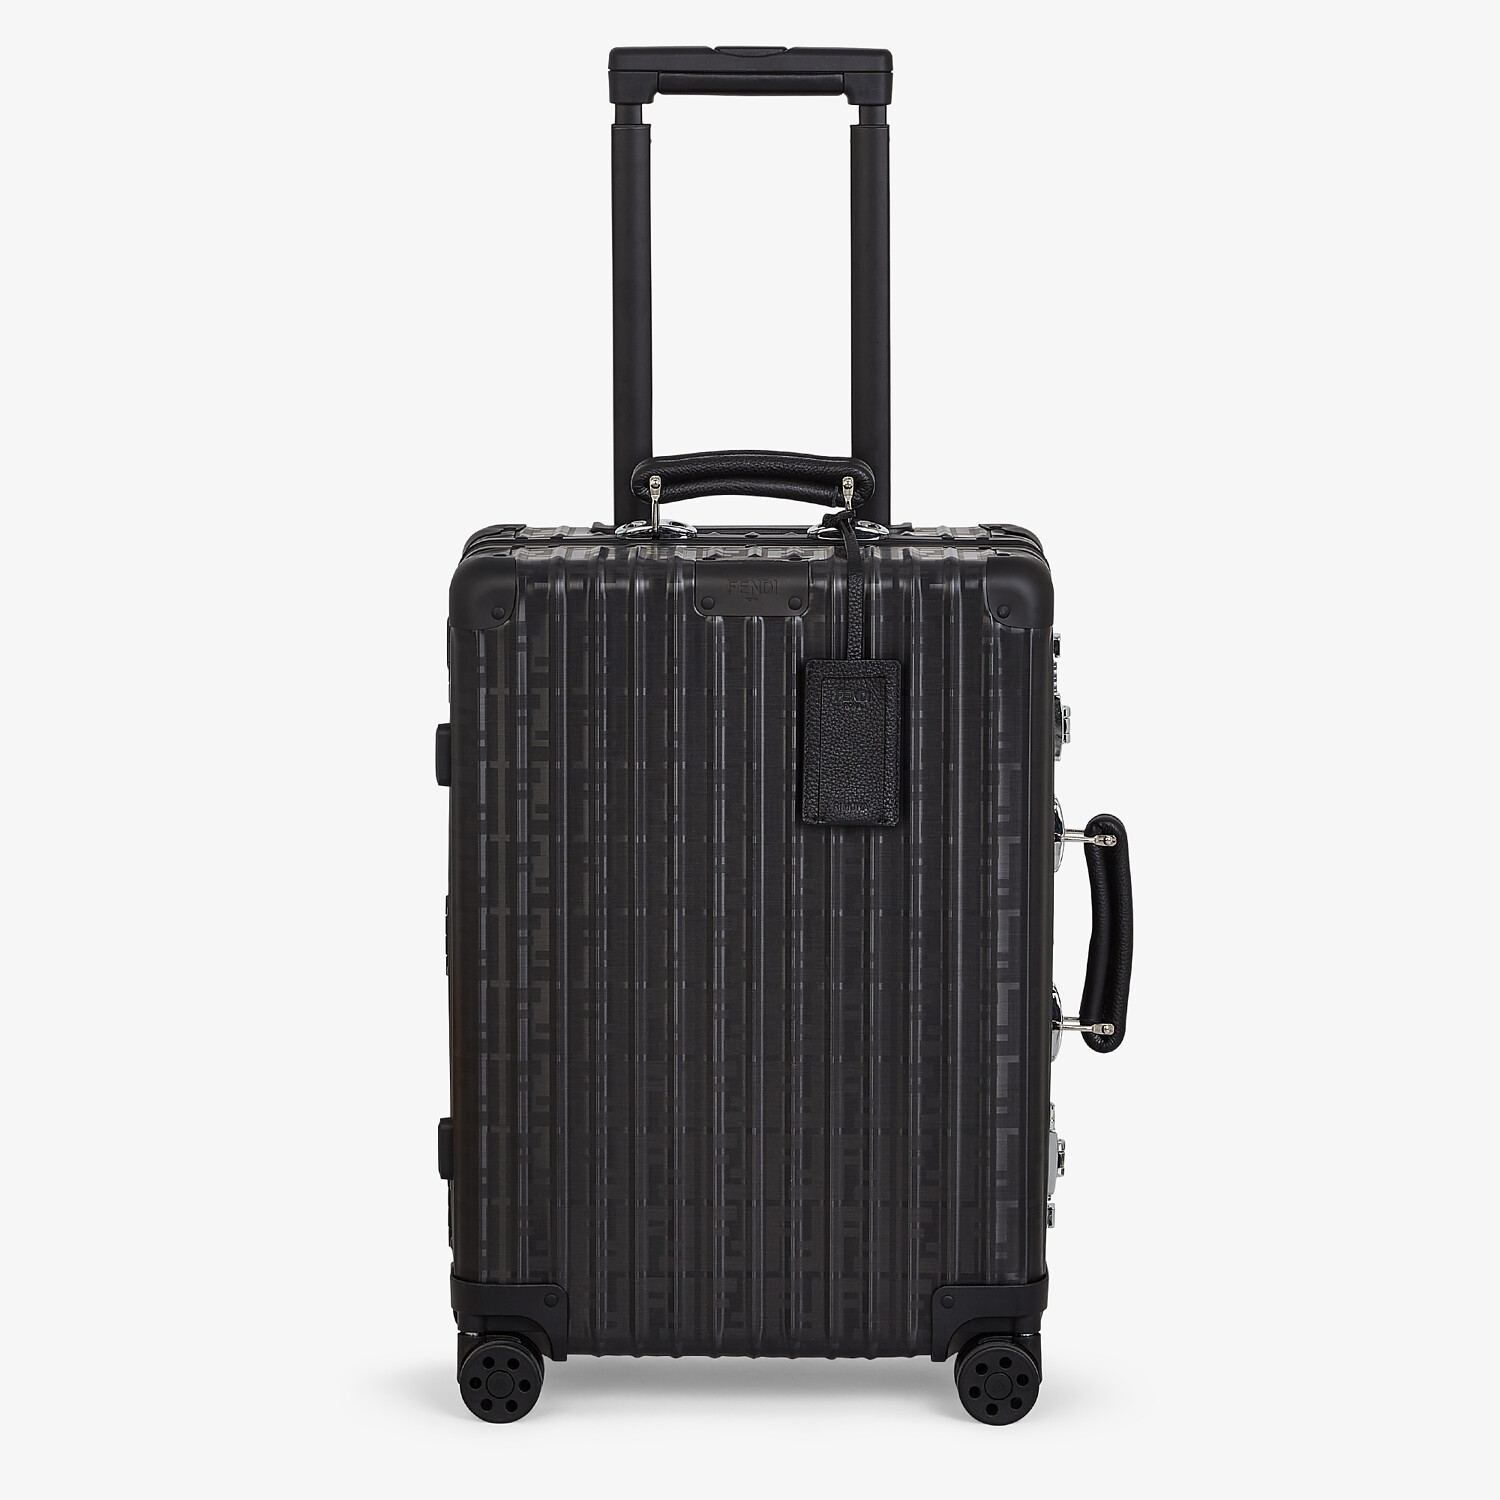 FENDI CABIN SIZE TROLLEY - Black aluminum trolley case with leather details - view 1 detail